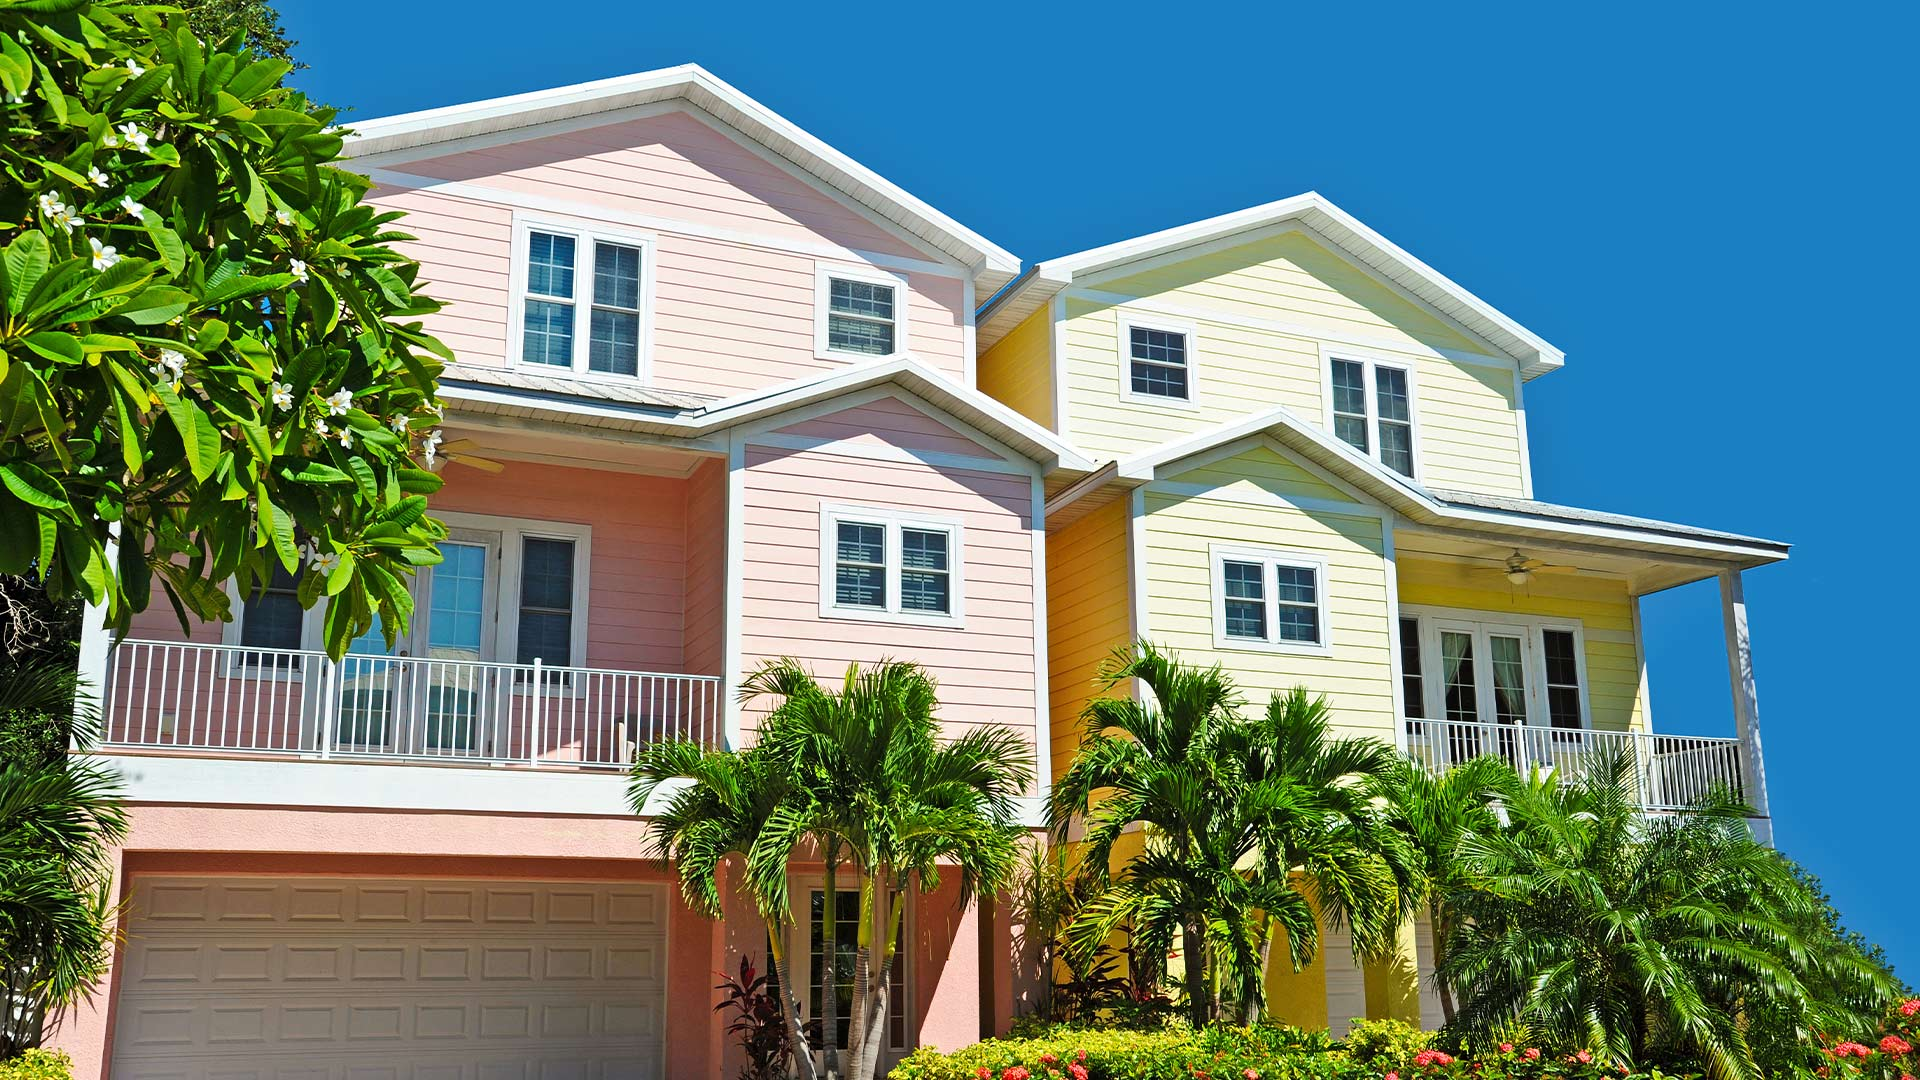 Investment property mortgage laws cadre new york real estate investment